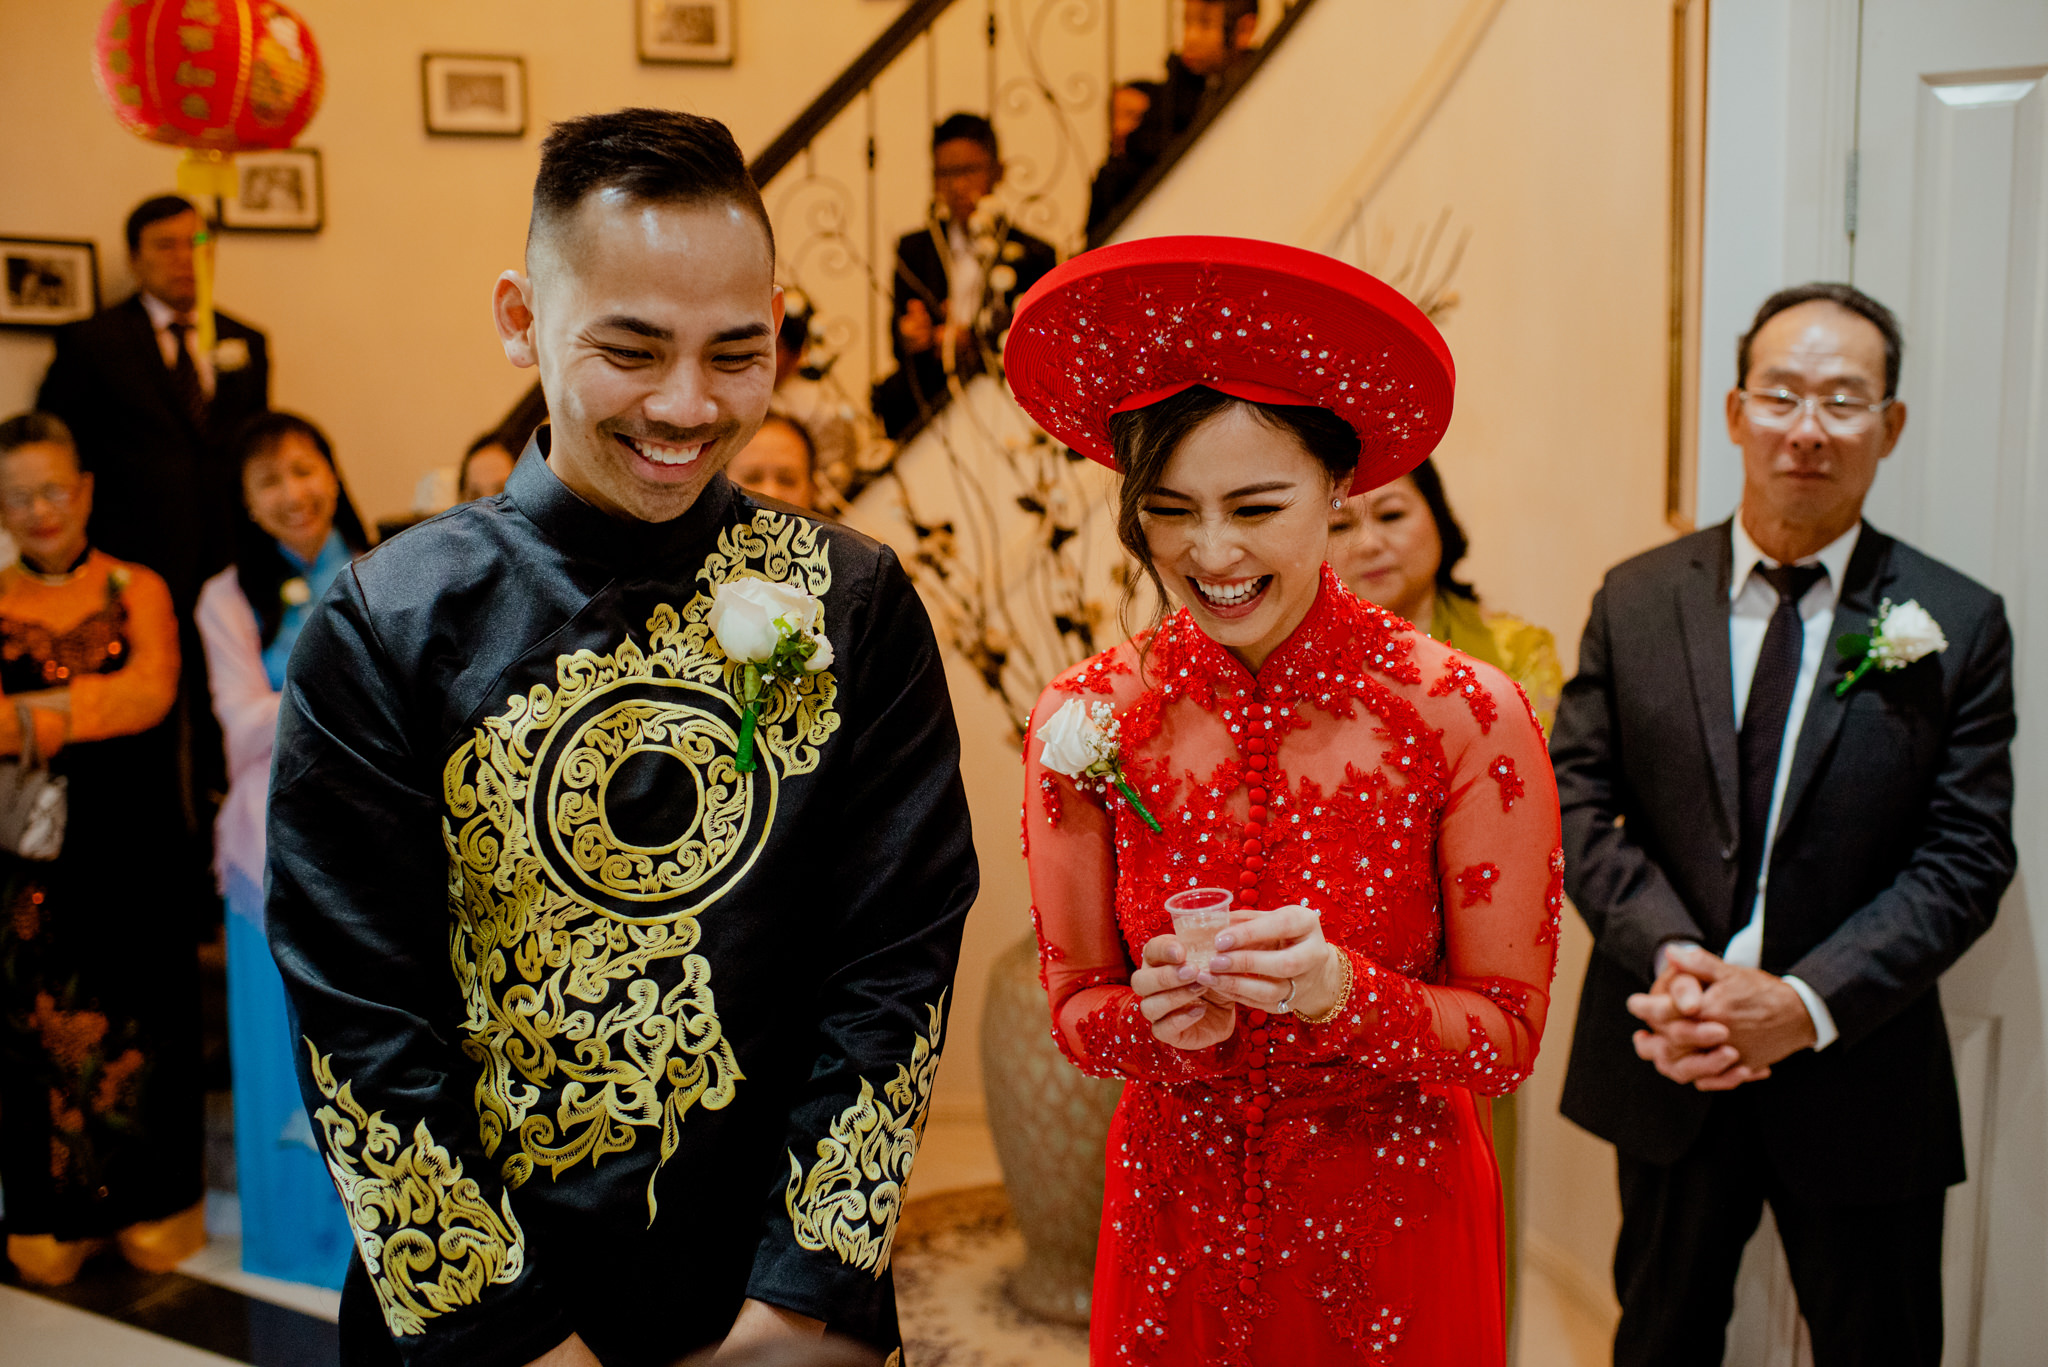 Vietnamese bride and groom laugh as they serve tea during an Asian tea ceremony